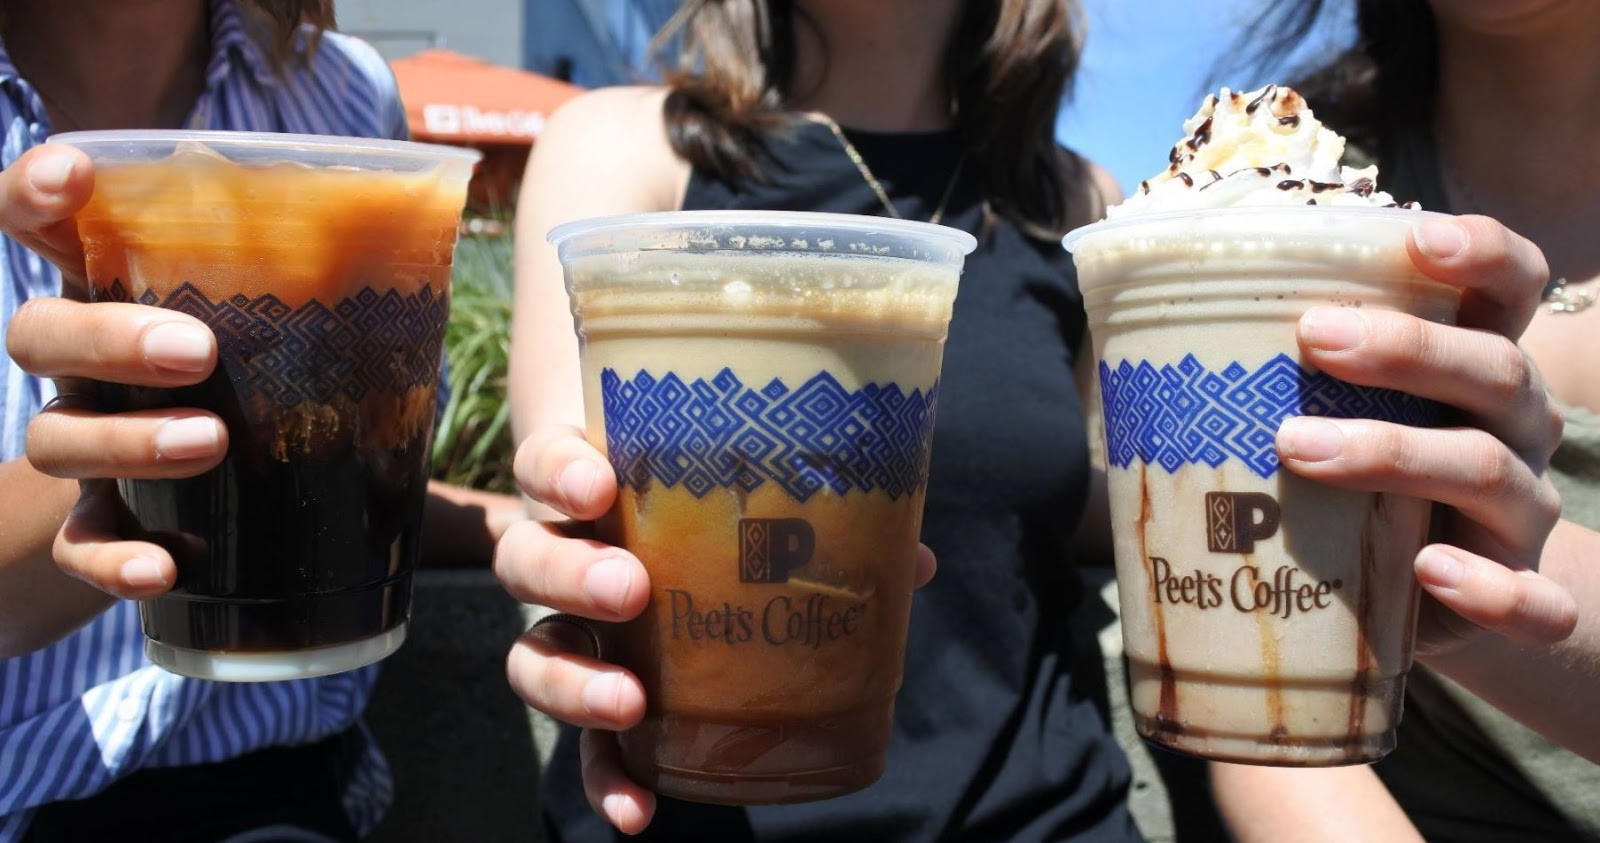 May 19 - Aug 25 | All Drinks At Peet's Coffee Are BOGO Free!